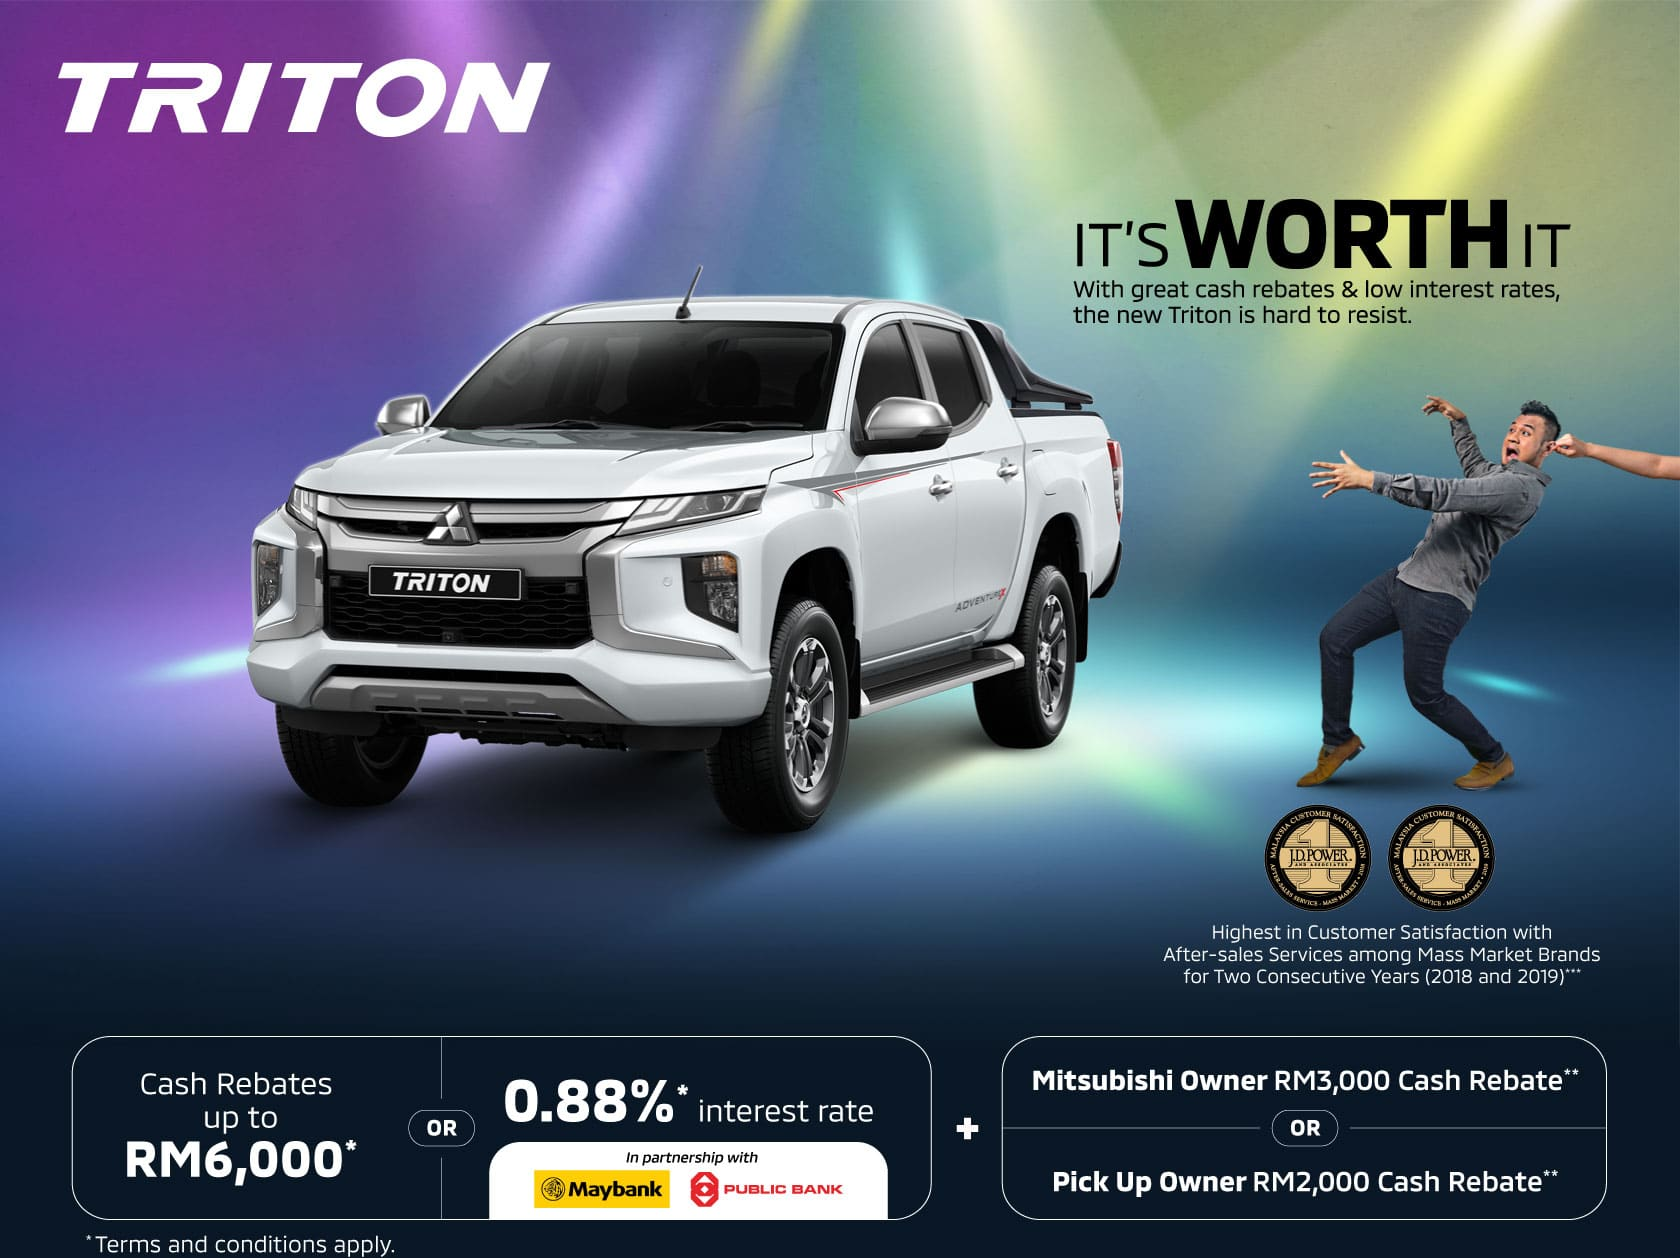 All new promotion for the Mitsubishi | Mitsubishi Motors Malaysia - Mitsubishi is back with their all new tritons, with great cash rebates up to RM6000 and low interest rates! A truly head turning promotion!